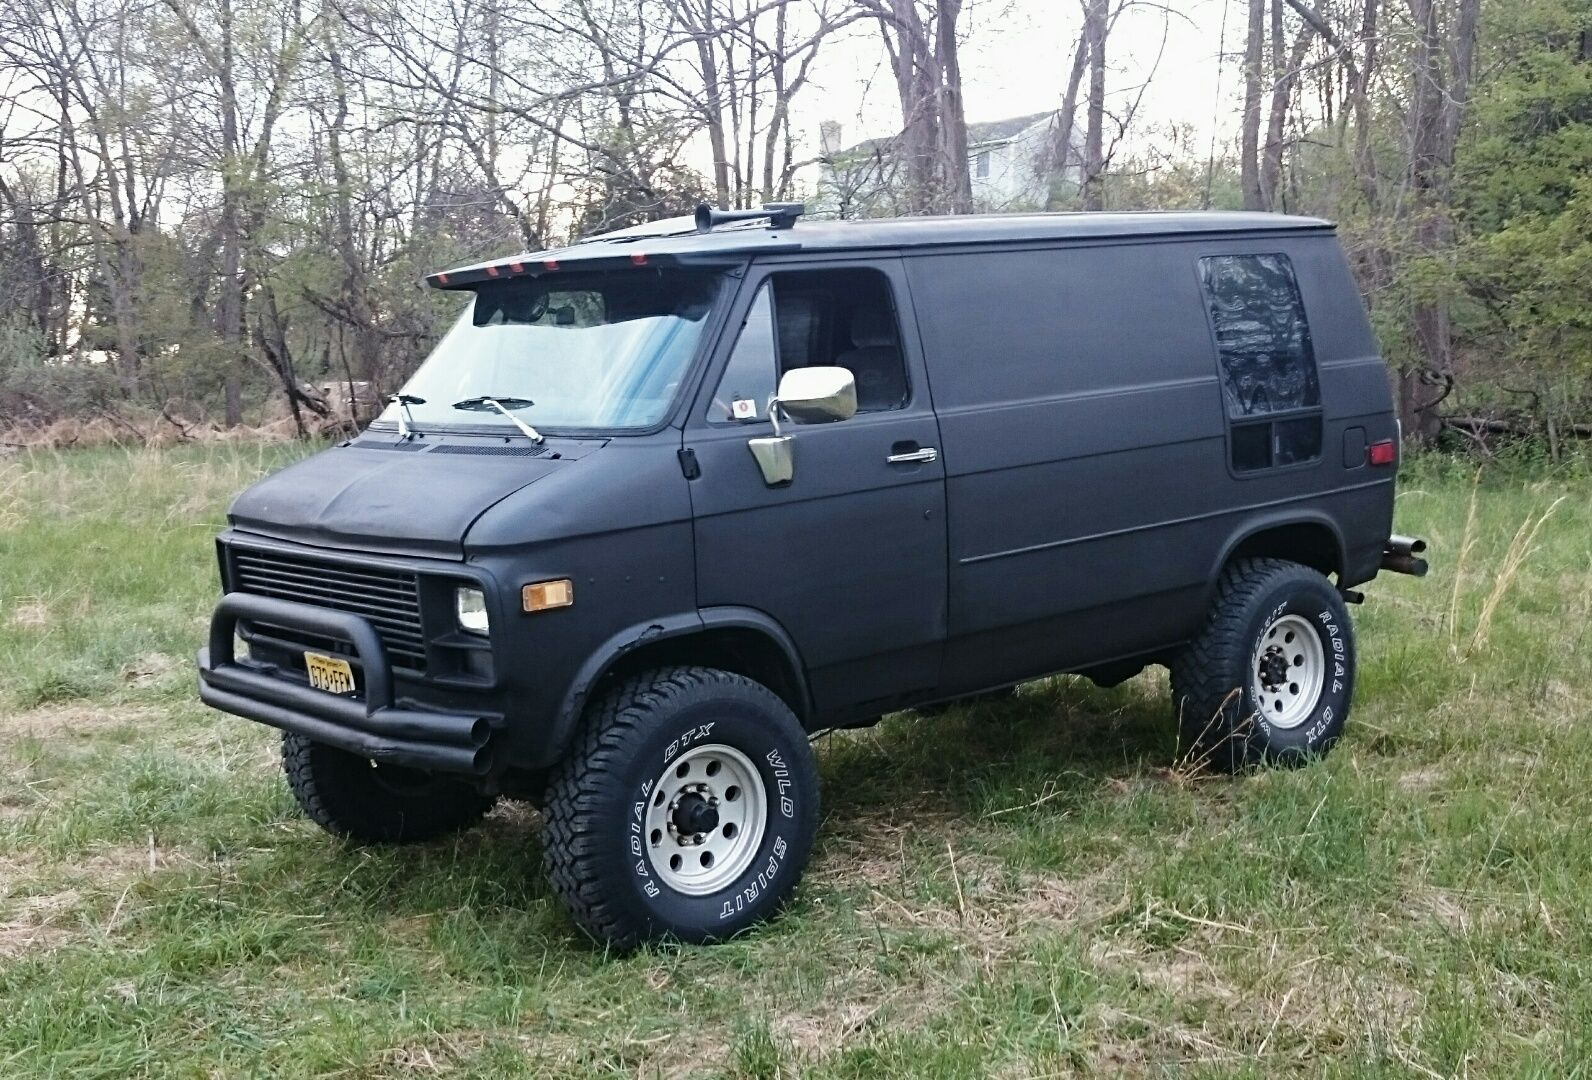 Shorty 1983 Pathfinder 4x4 Chevy Van Trik Edition With A 350